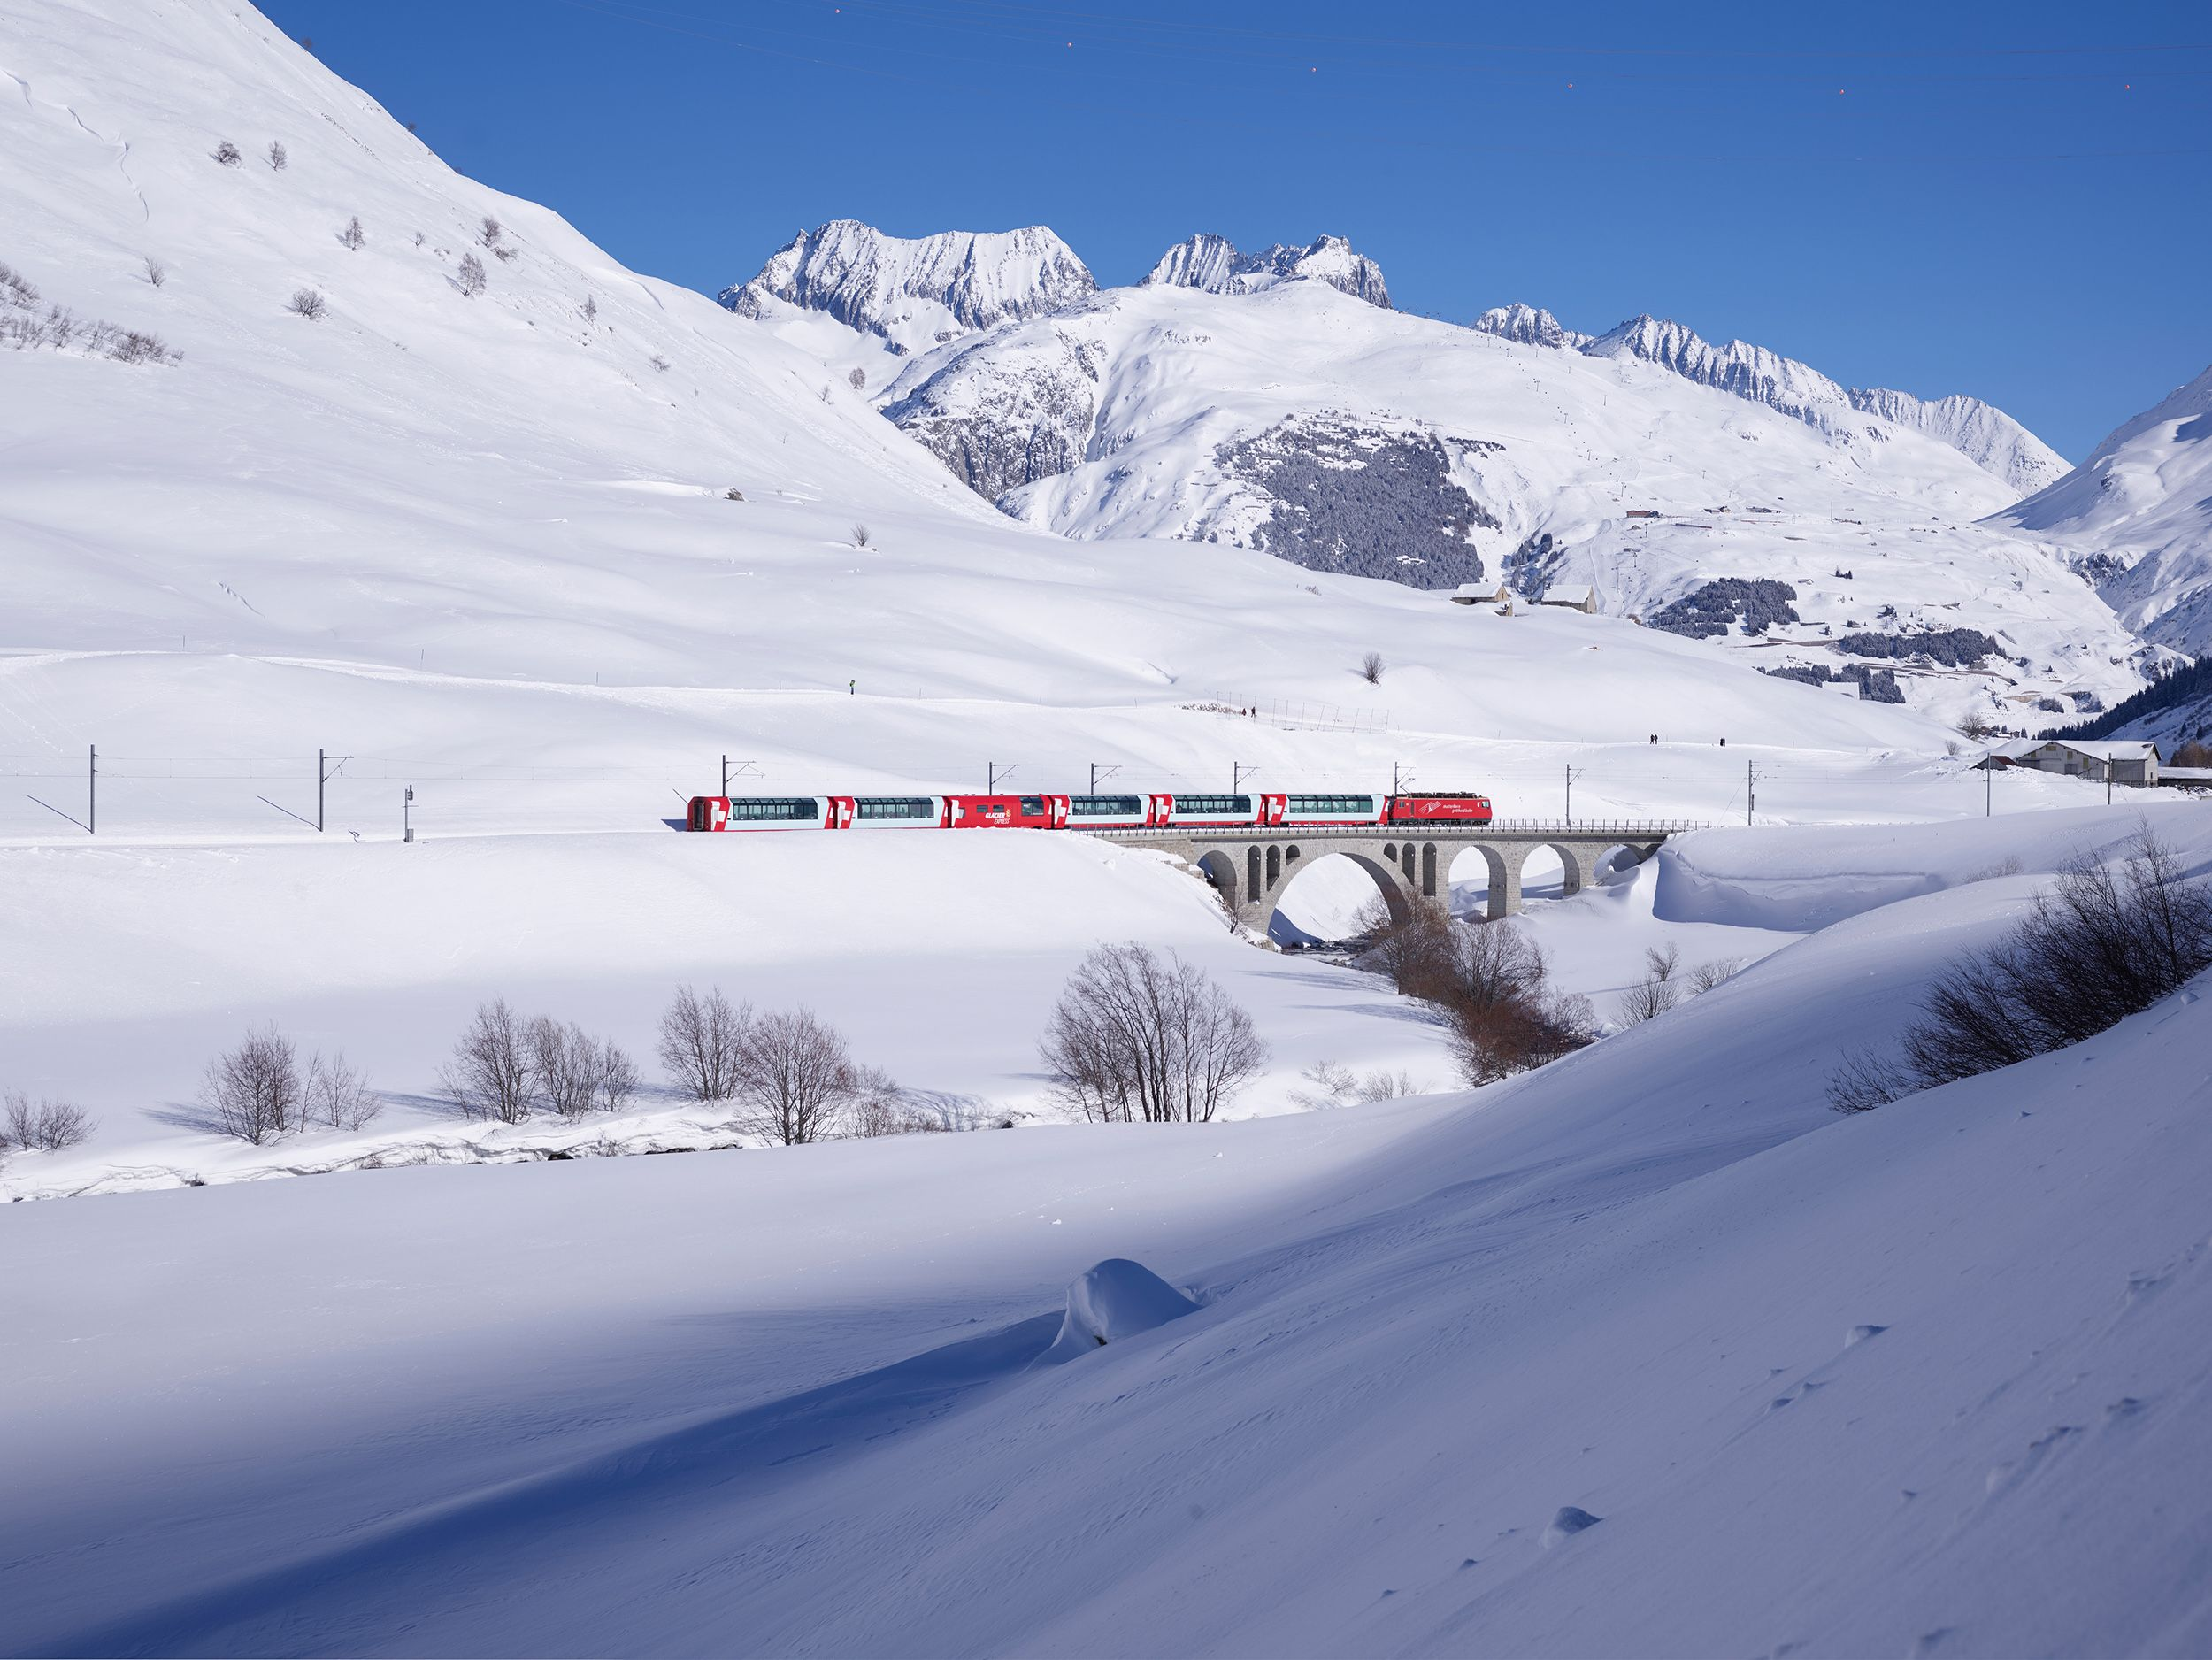 The photos that prove the Glacier Express is the most magical winter train ride